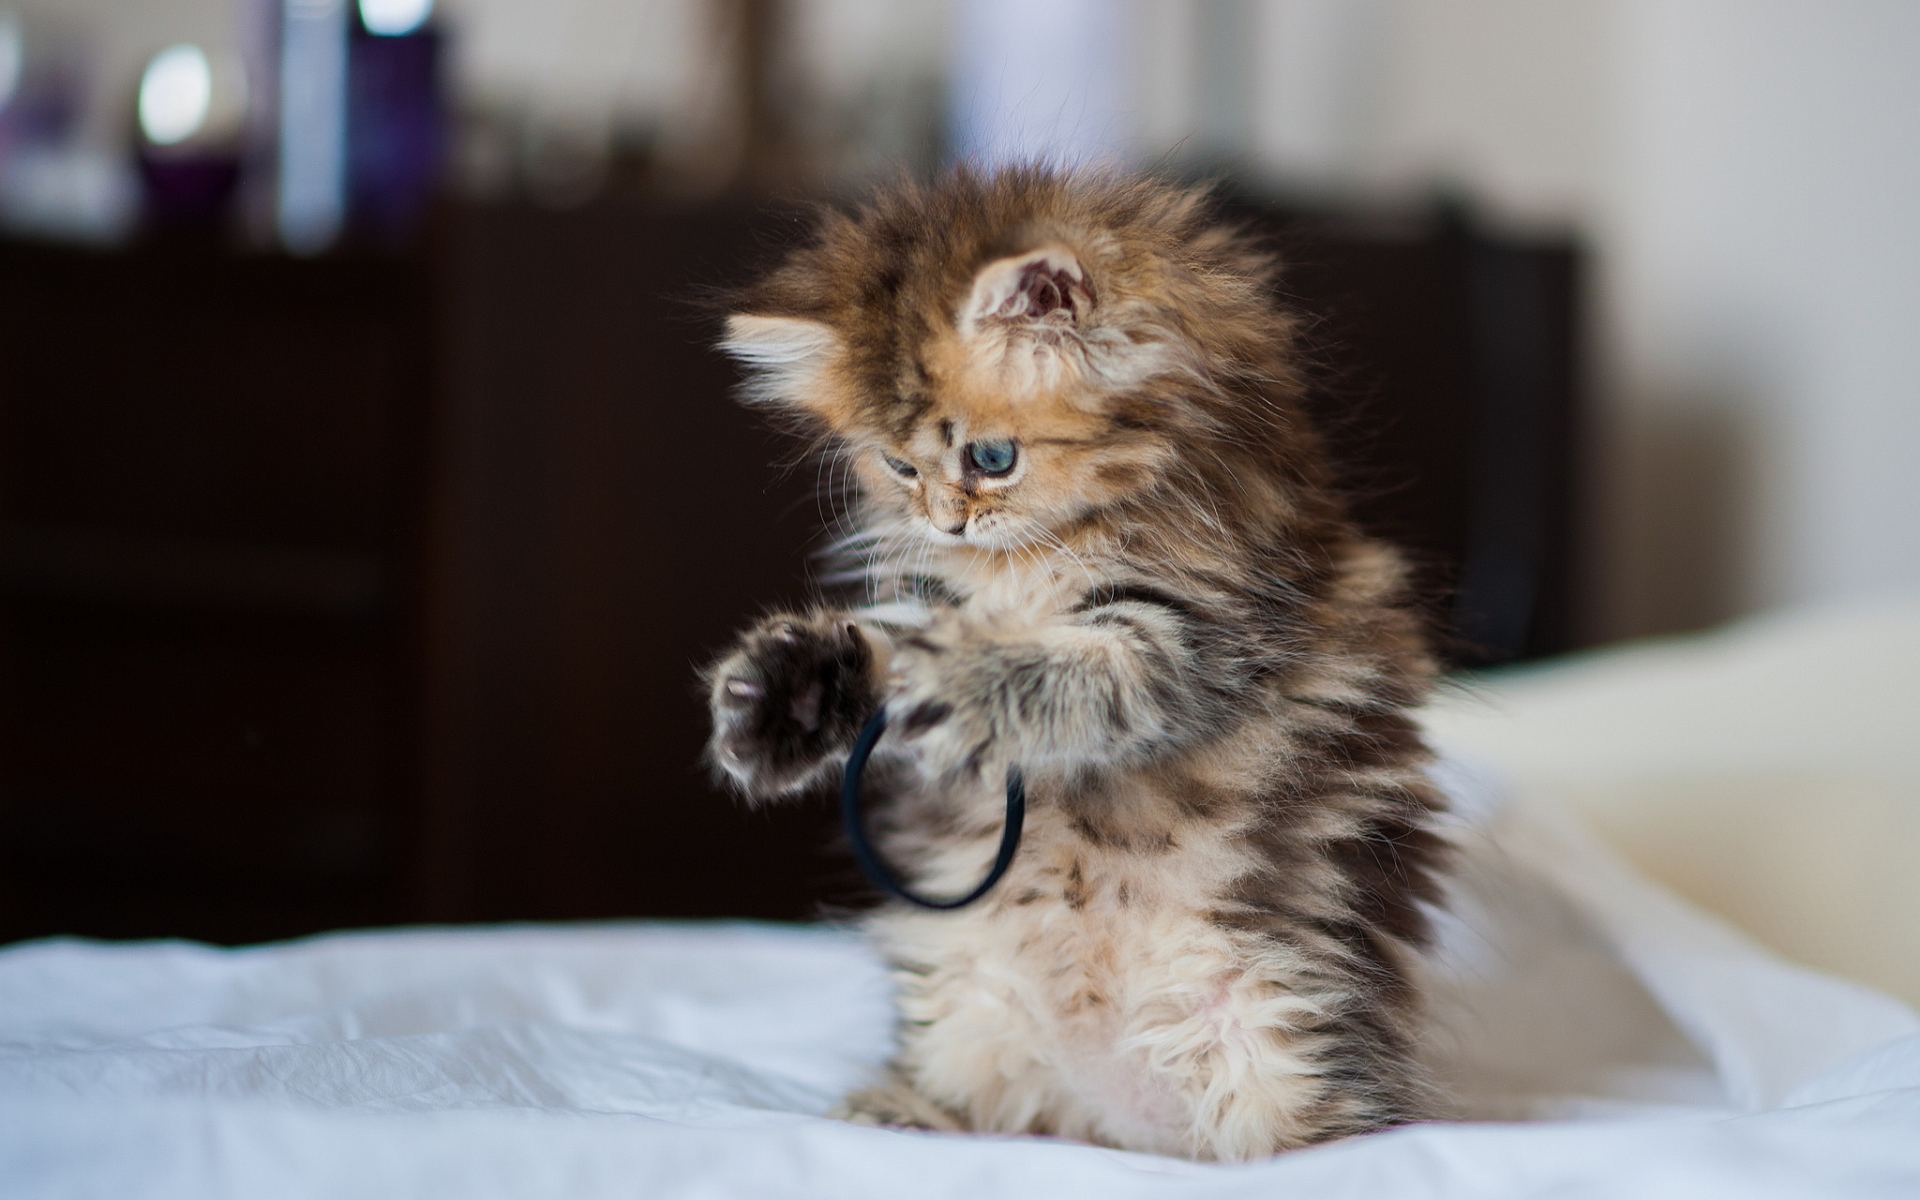 Cute Little Cat Playing